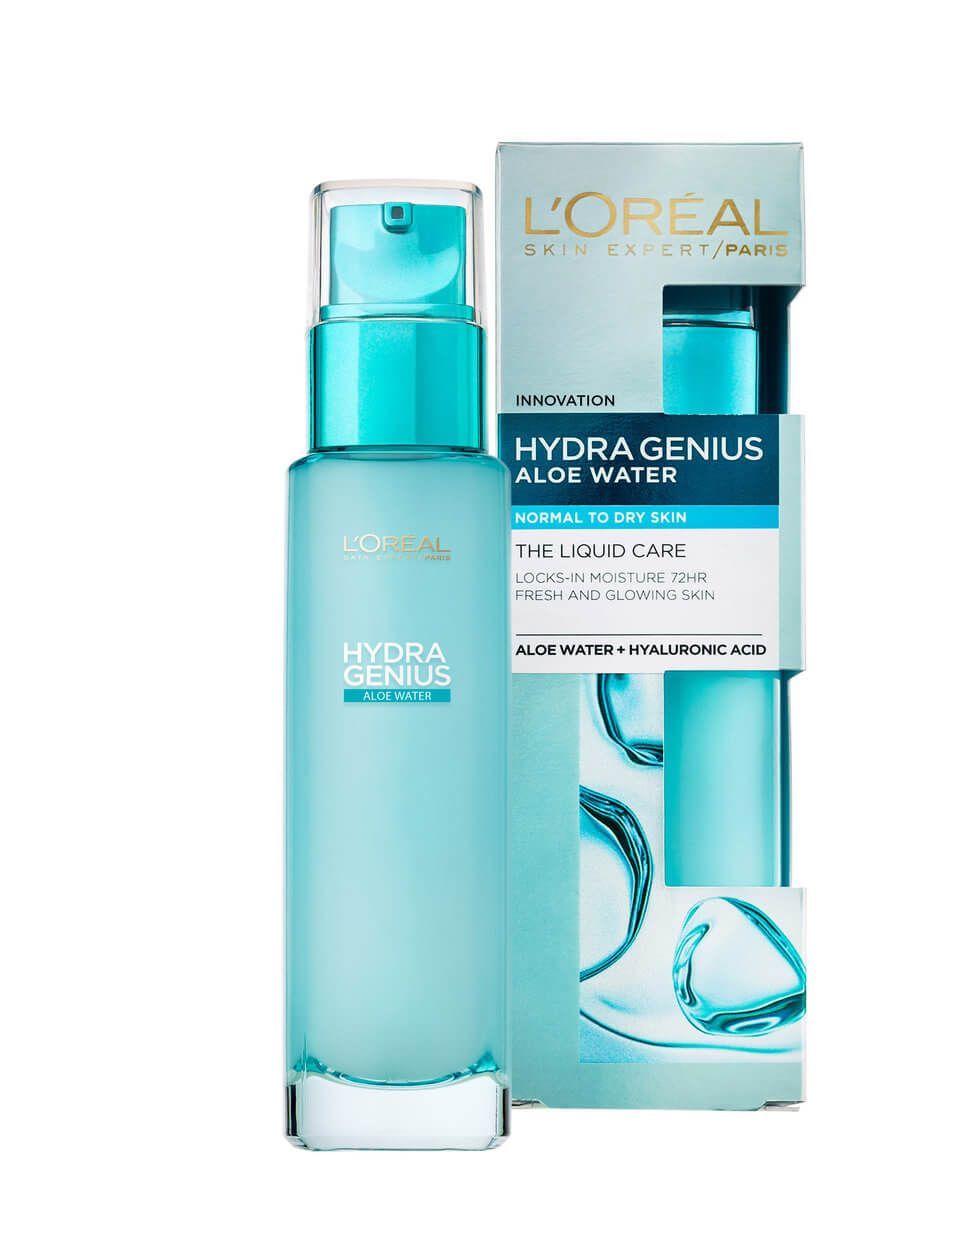 L Oreal Paris Hydra Genius Liquid Care Loreal Skin Dry Sensitive Skin Skin Moisturizer